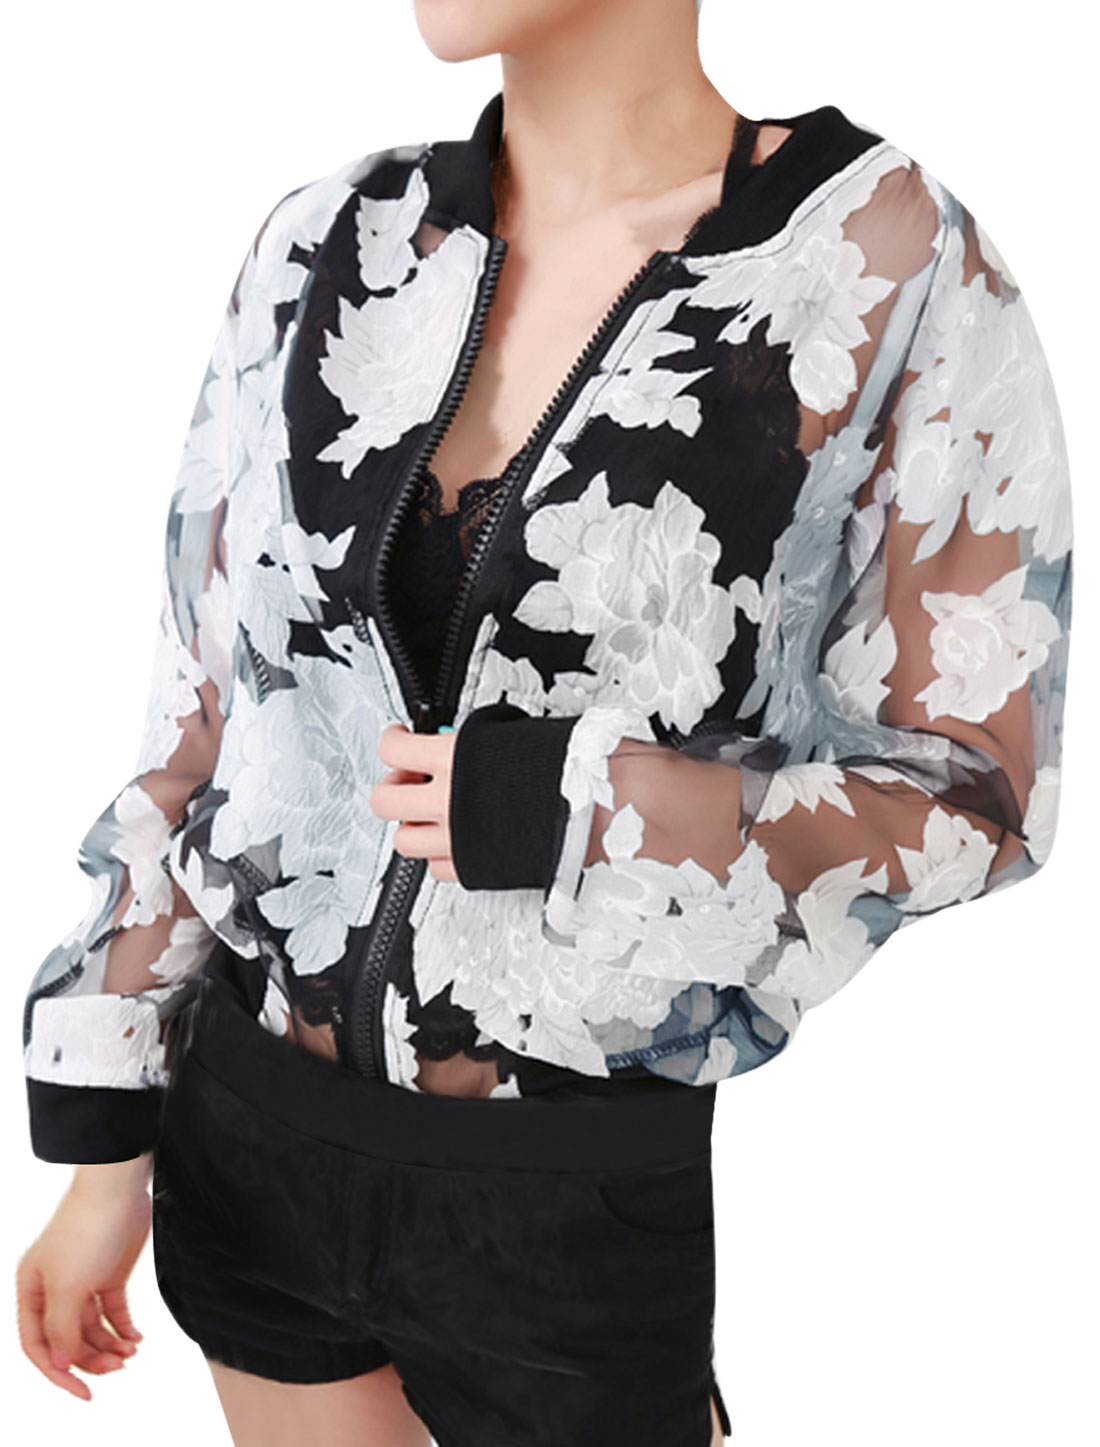 Women's Stand Collar Long Sleeves Semi-sheer Flower Zip Up Black S Jacket Top